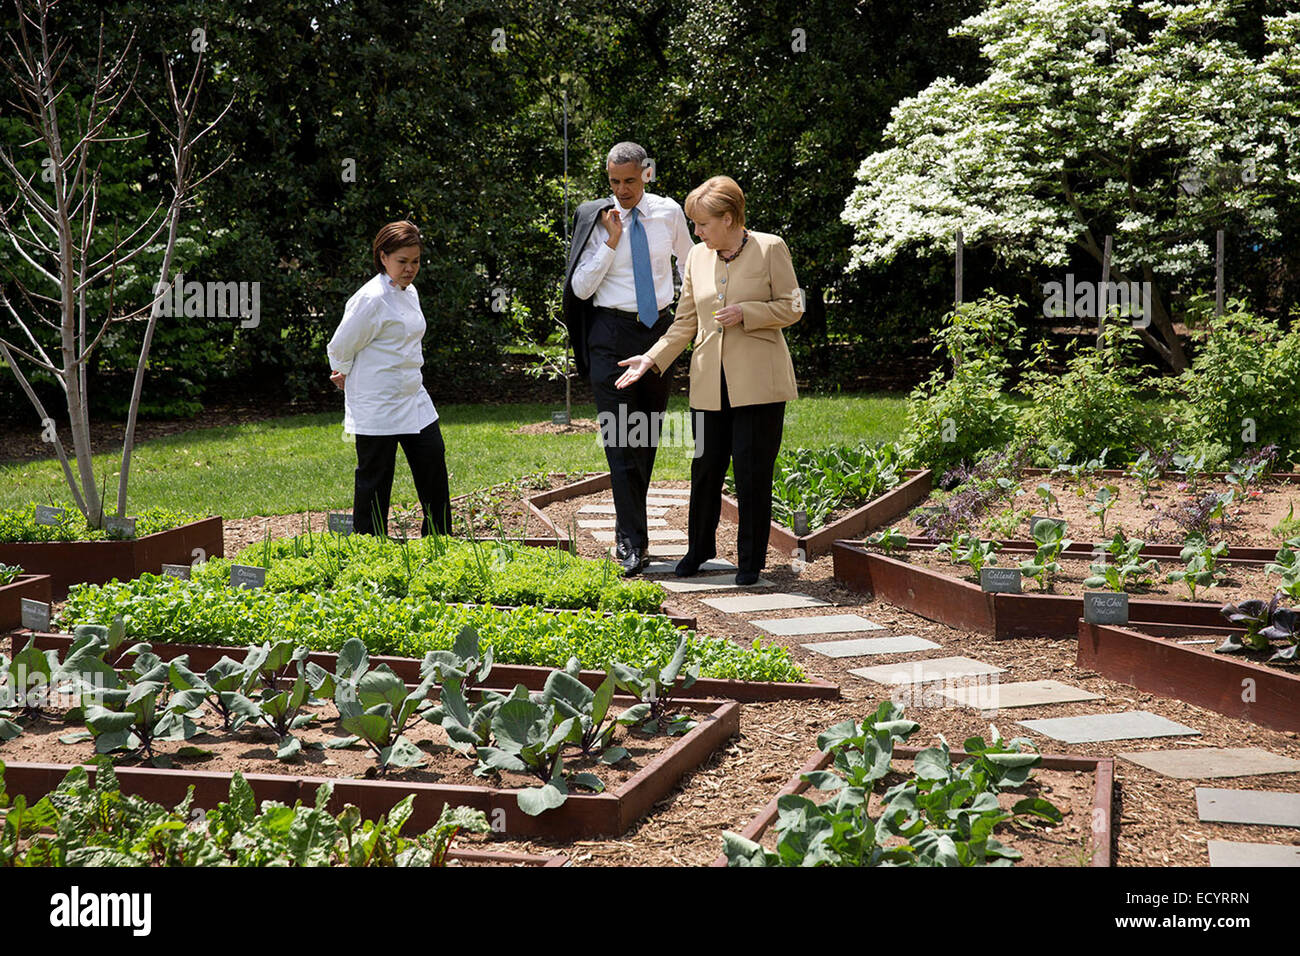 President Barack Obama and Chancellor Angela Merkel of Germany tour the White House Kitchen Garden on the South - Stock Image